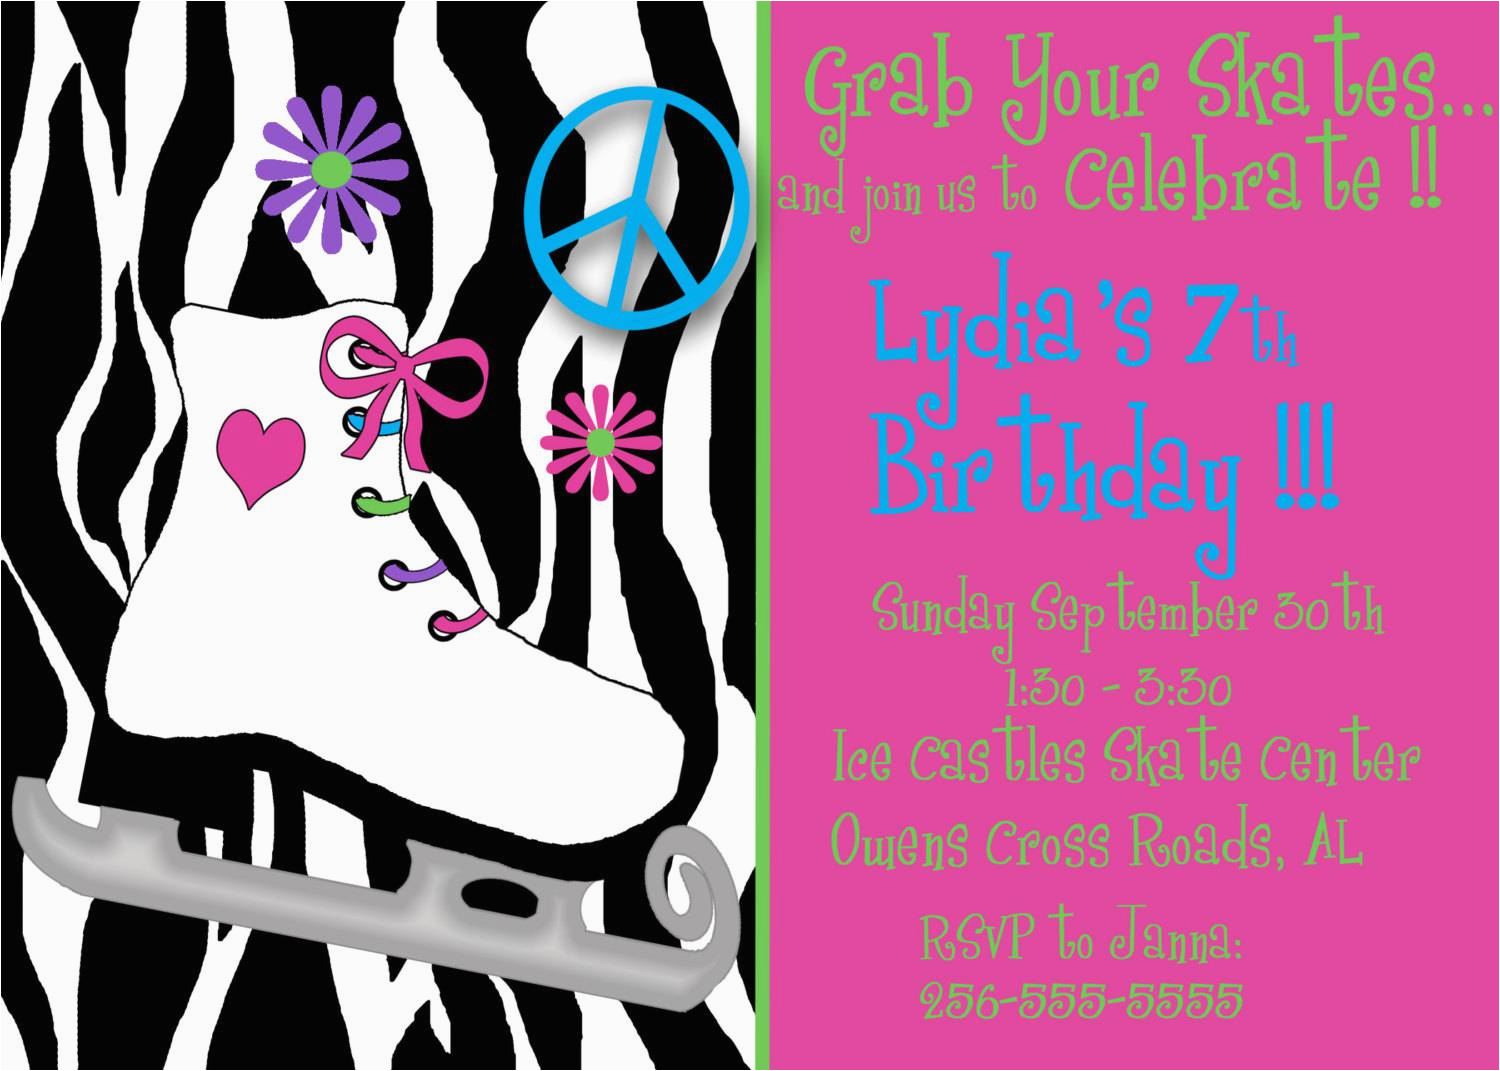 graphic regarding Free Printable Skating Party Invitations called Ice Skating Birthday Occasion Invites Free of charge Printable